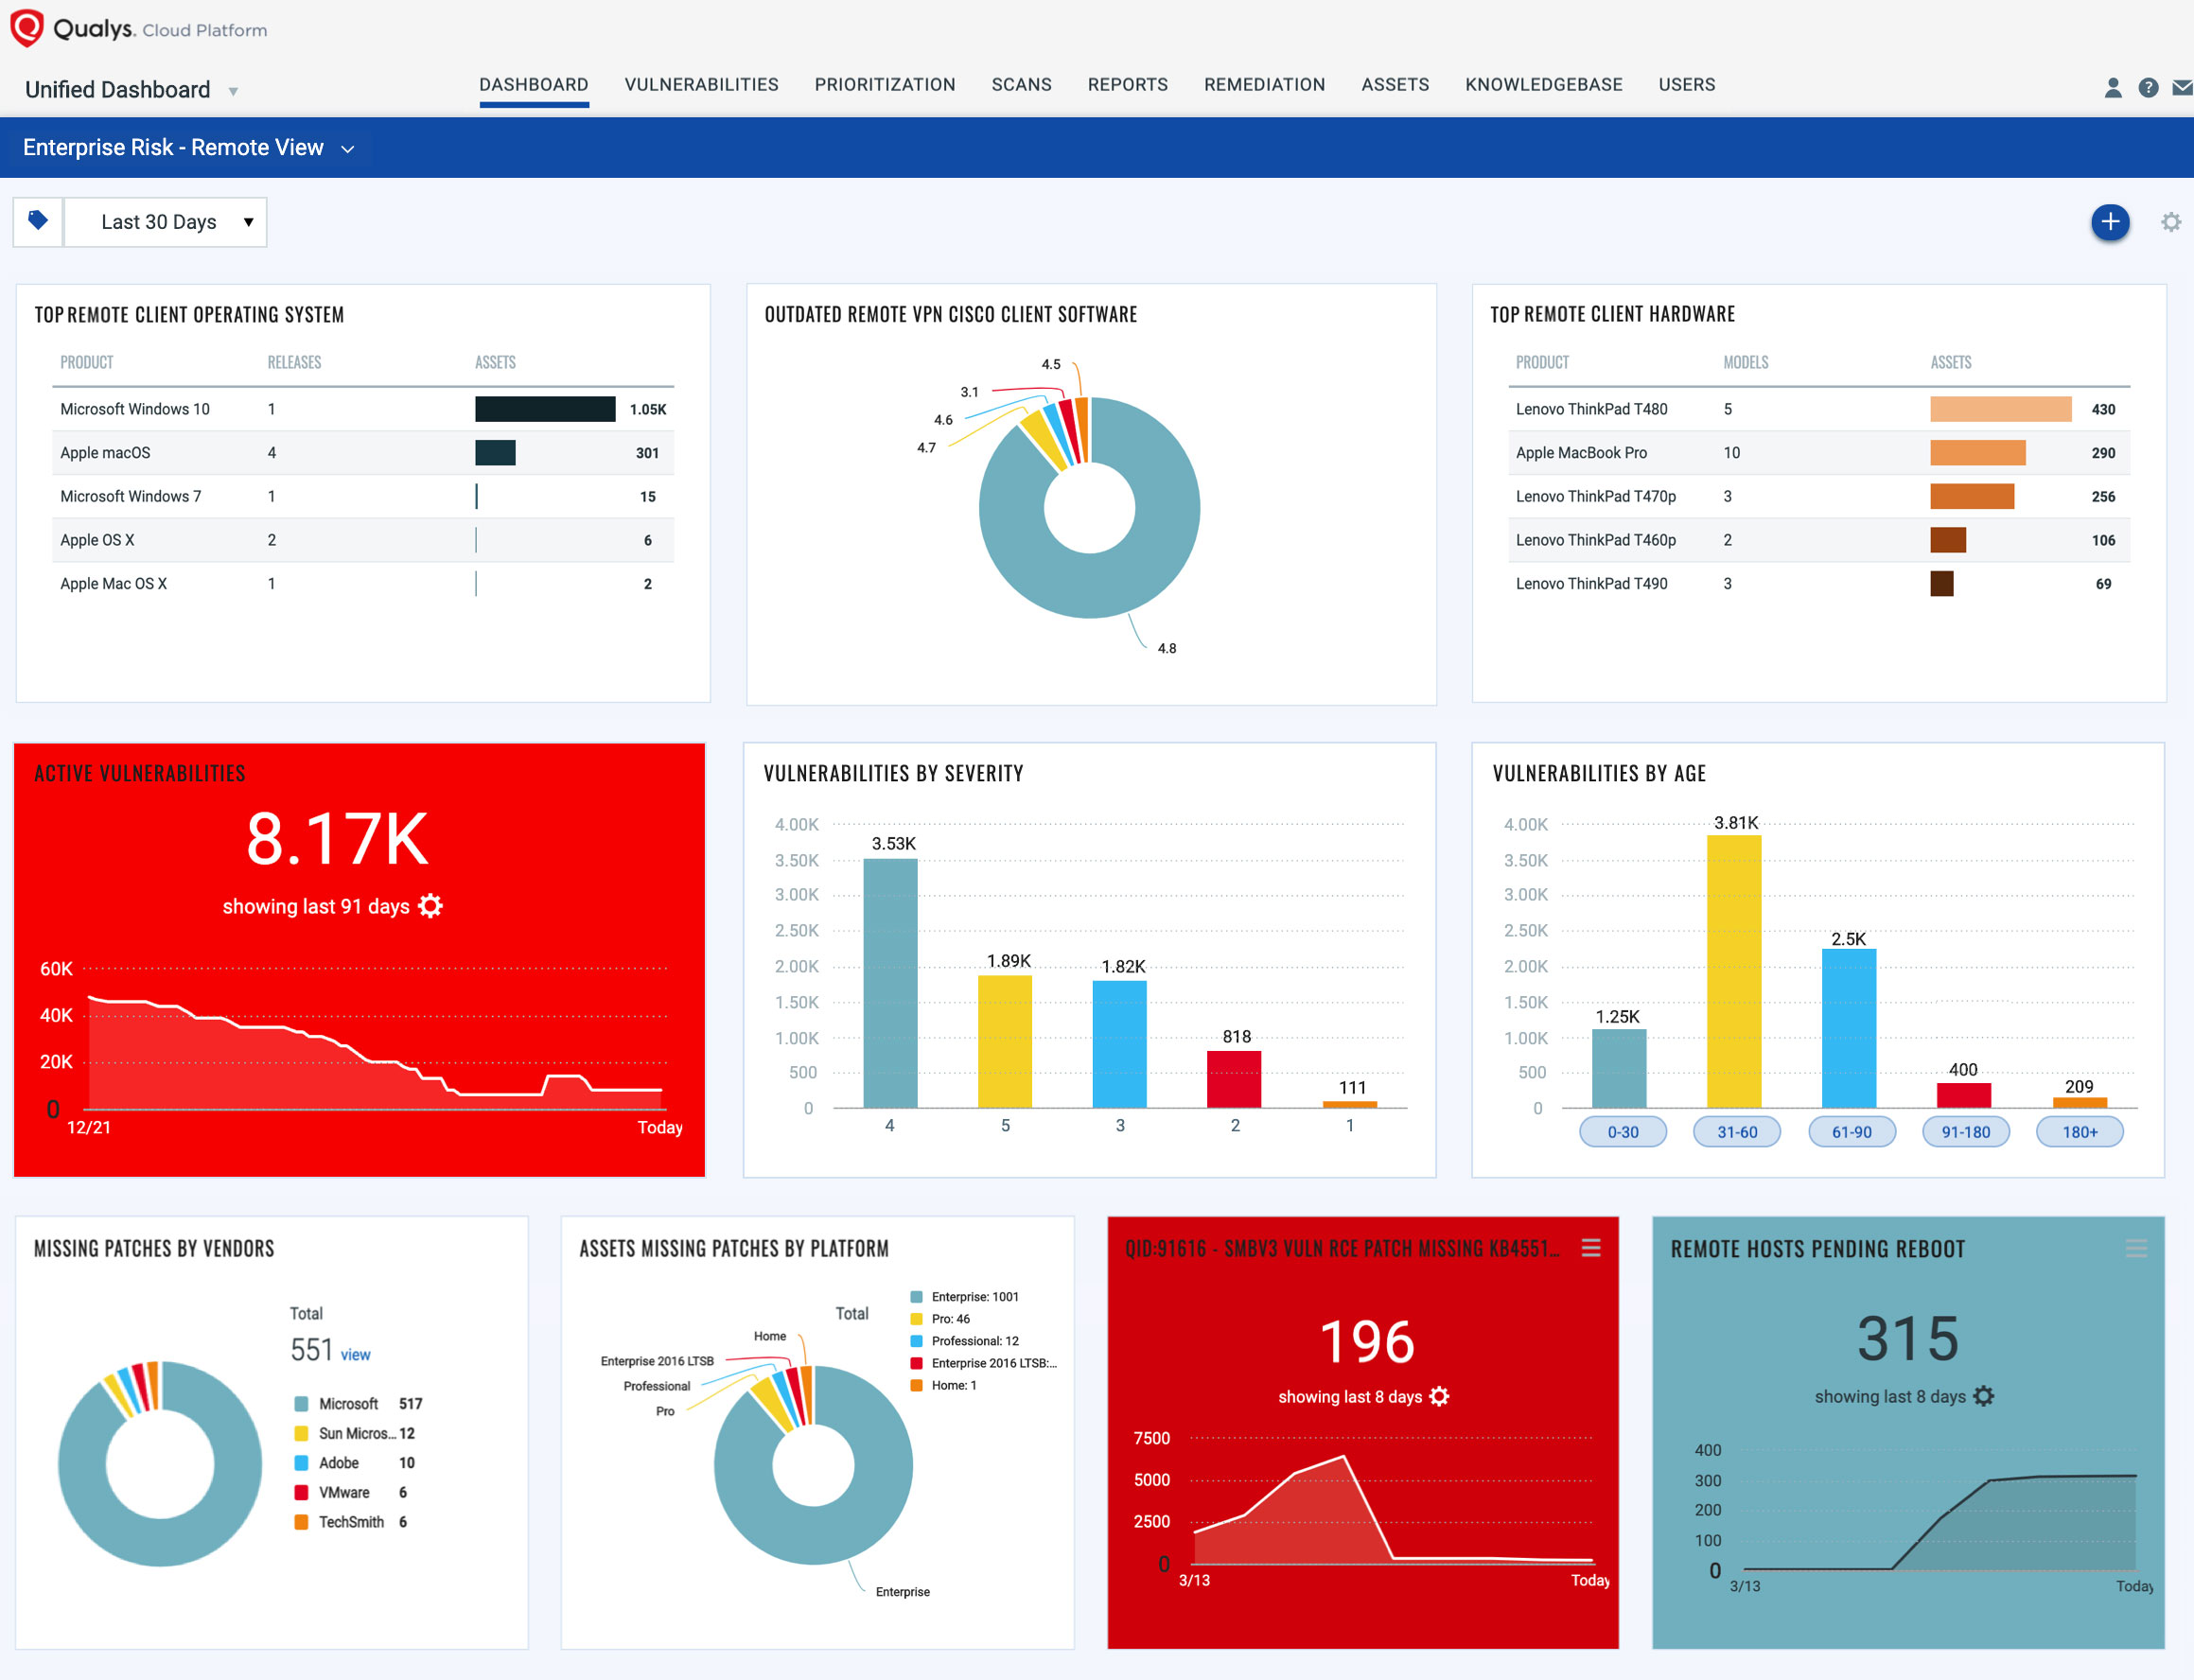 Unified Dashboard